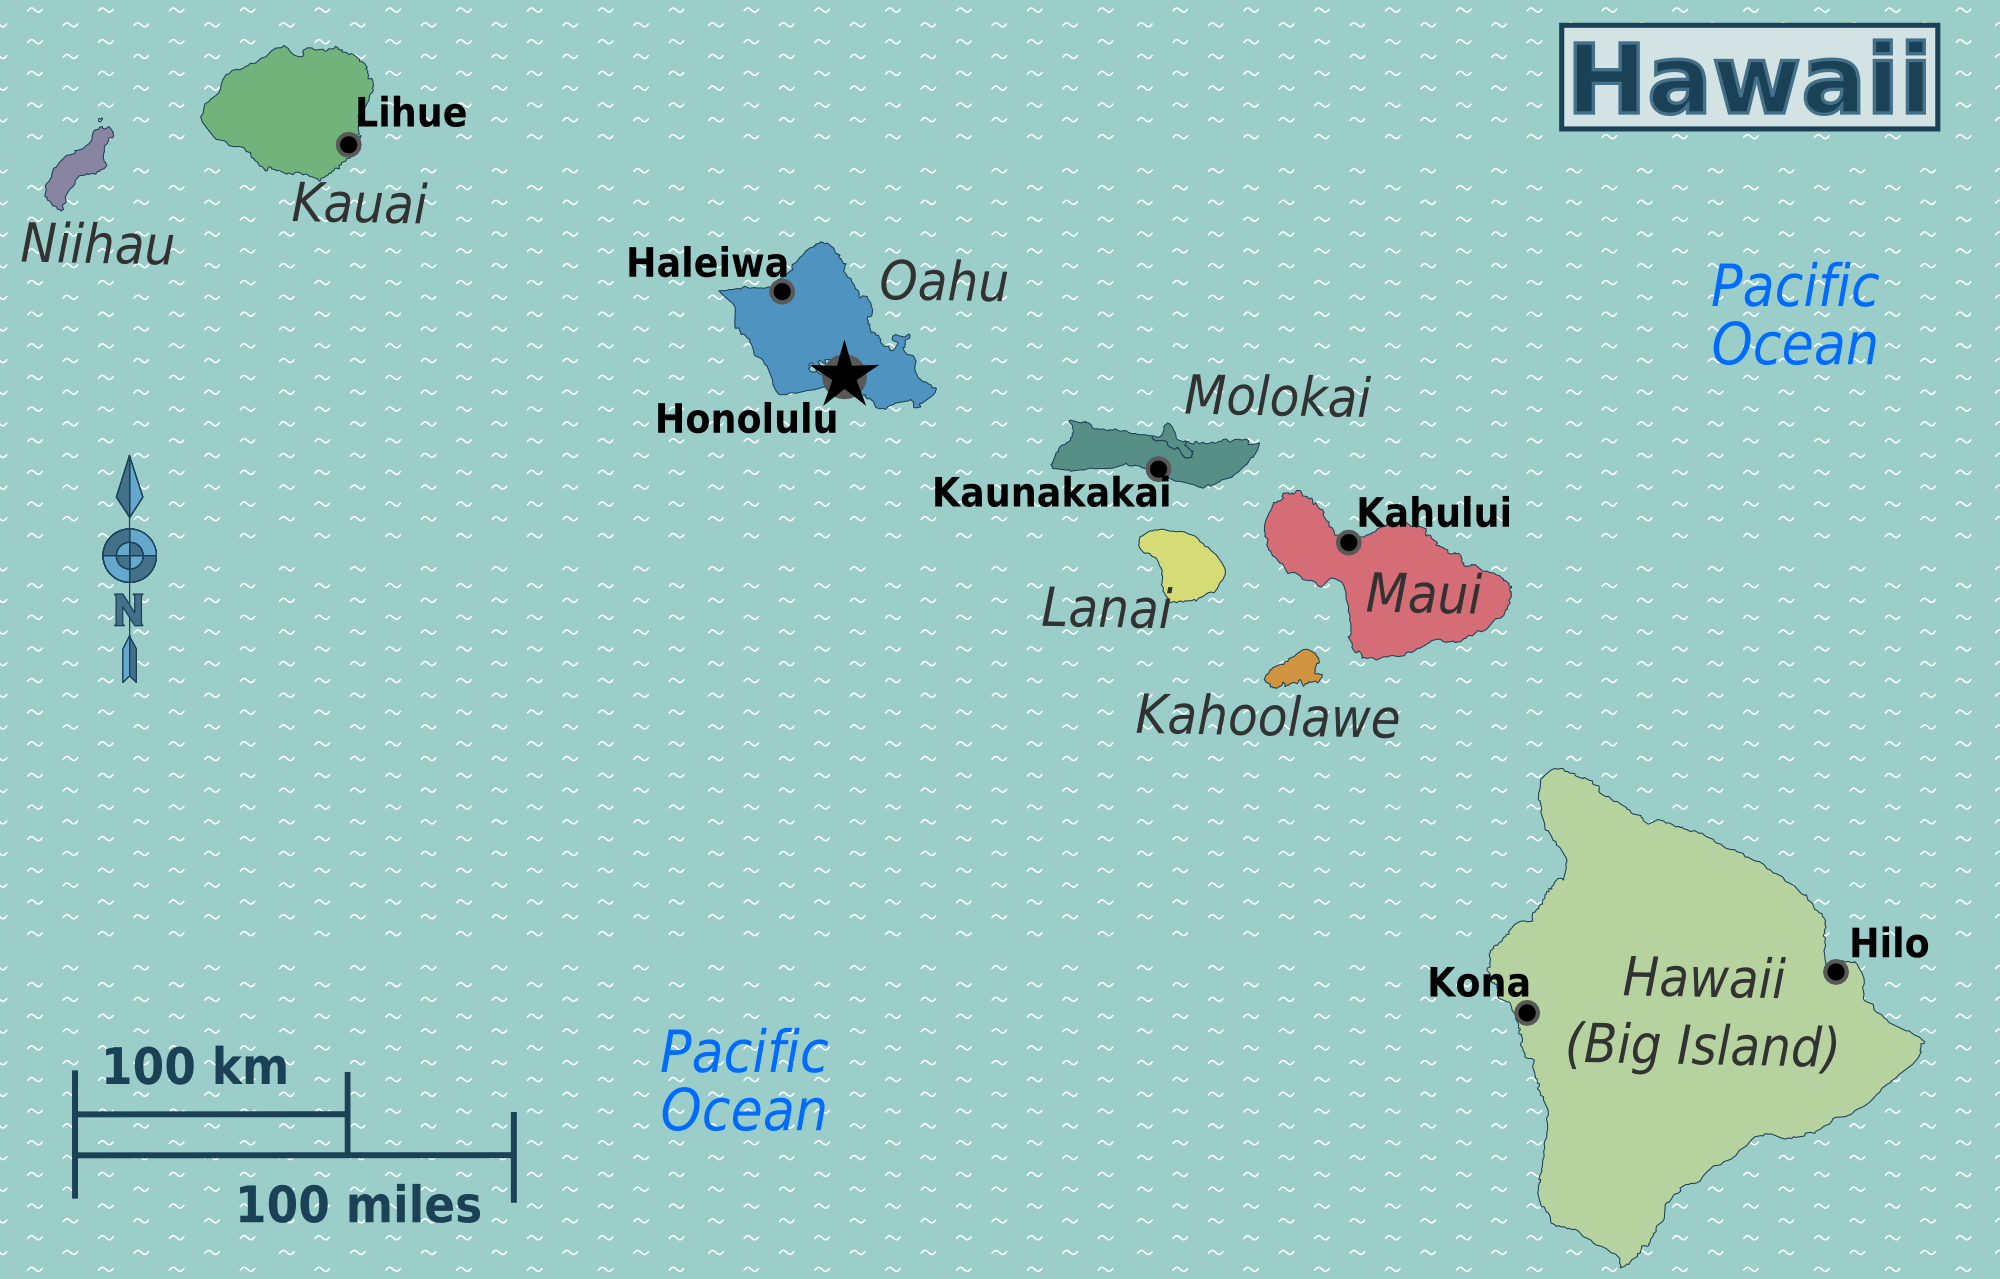 Kahului Hawaii Map.Hawaii Travel Guide At Wikivoyage